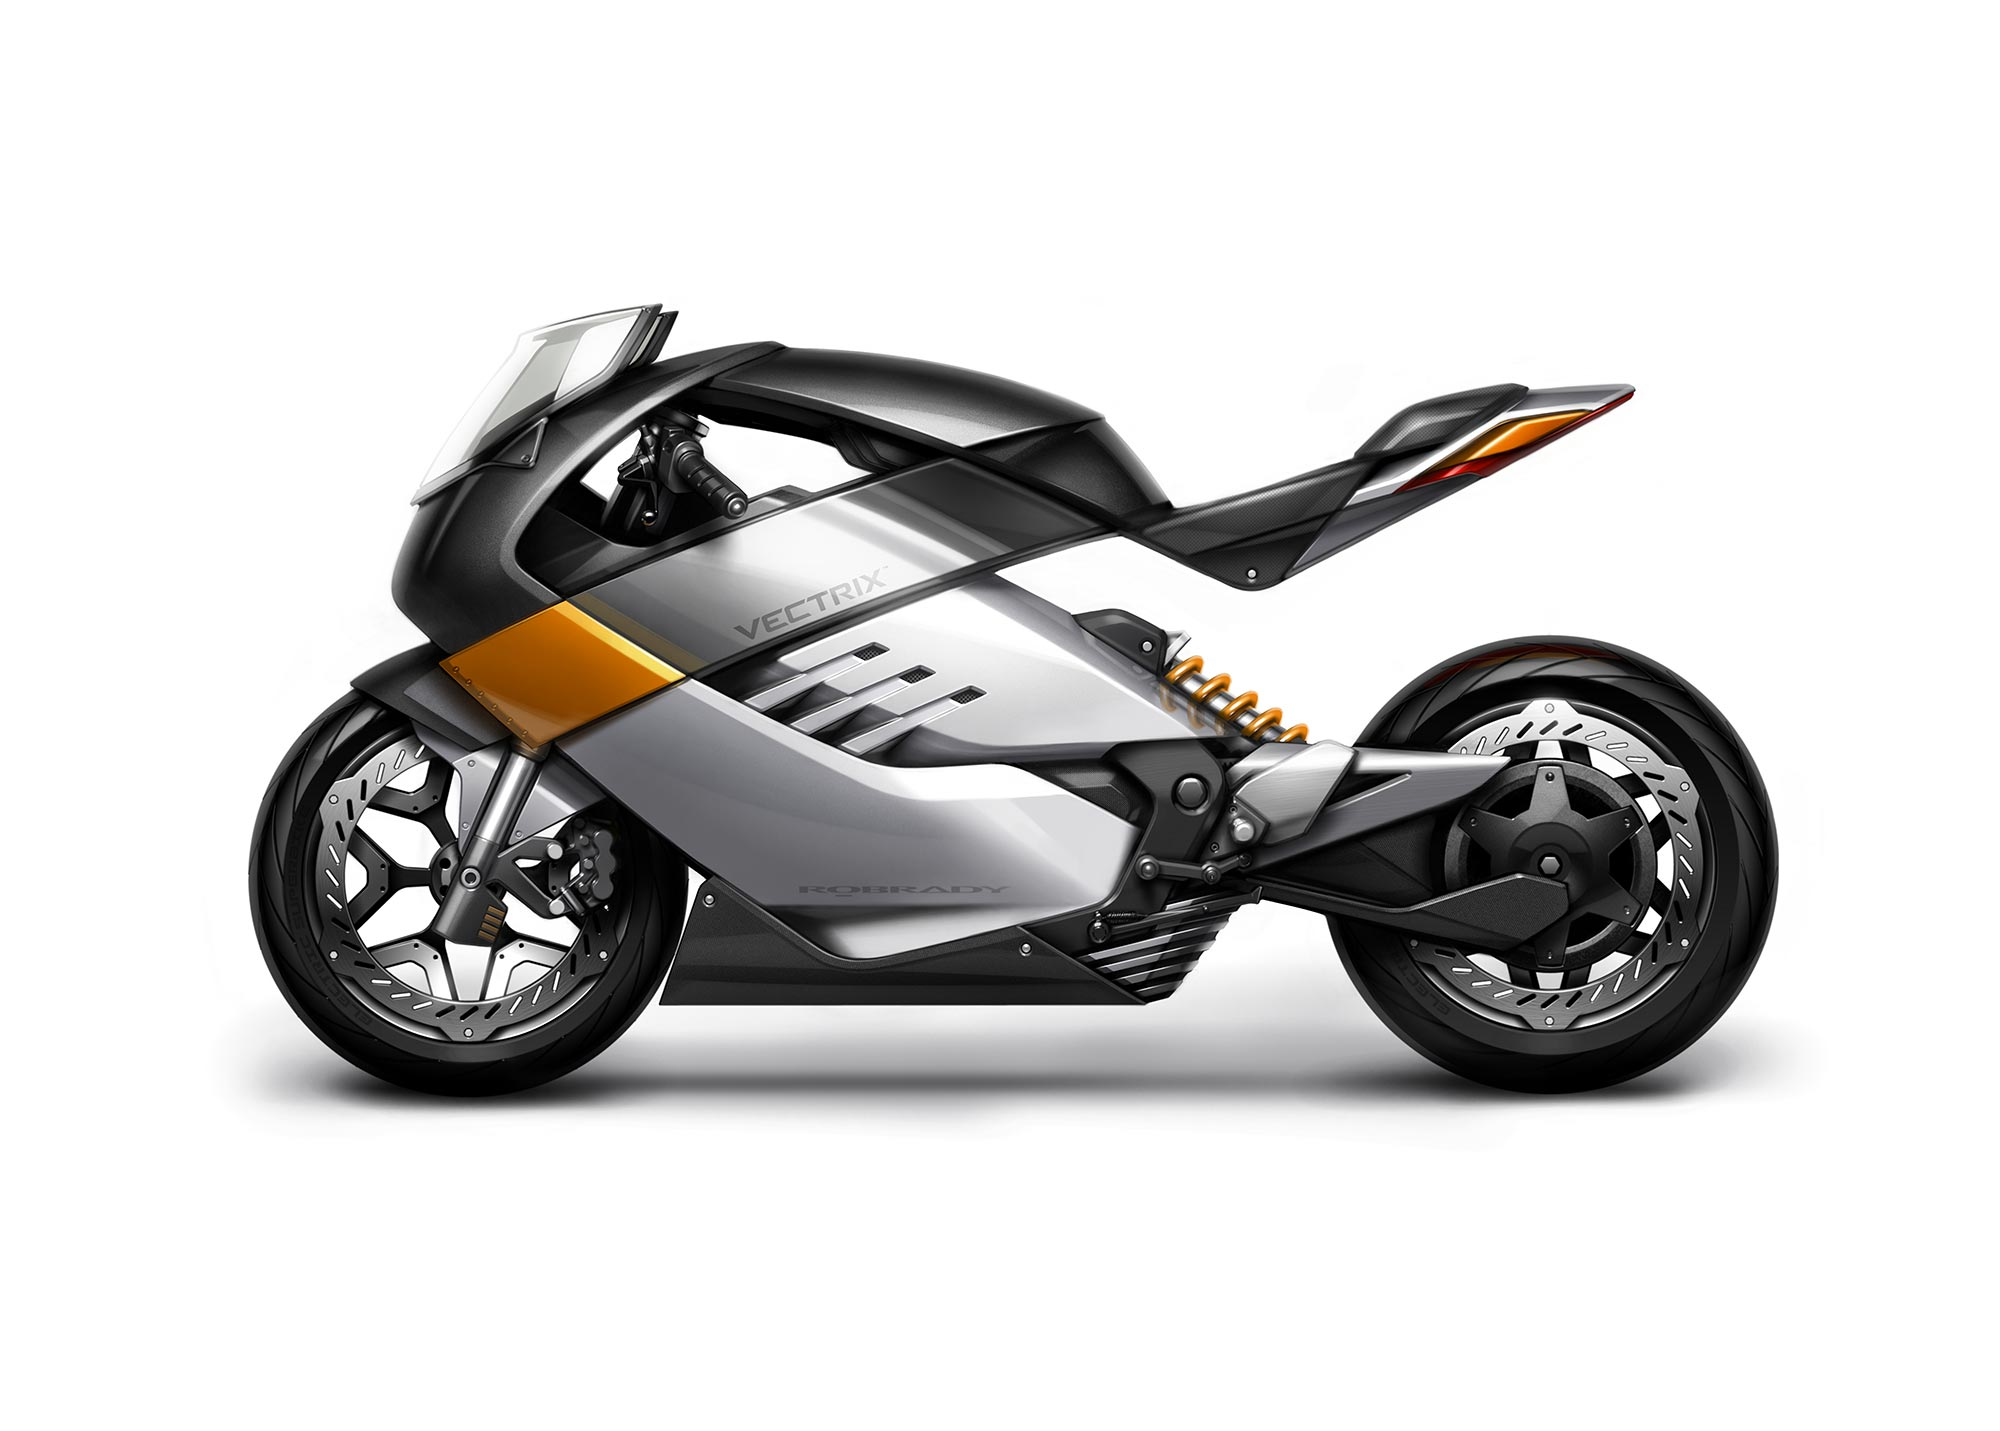 Rumor Vectrix To Debut An Electric Superbike At Eicma